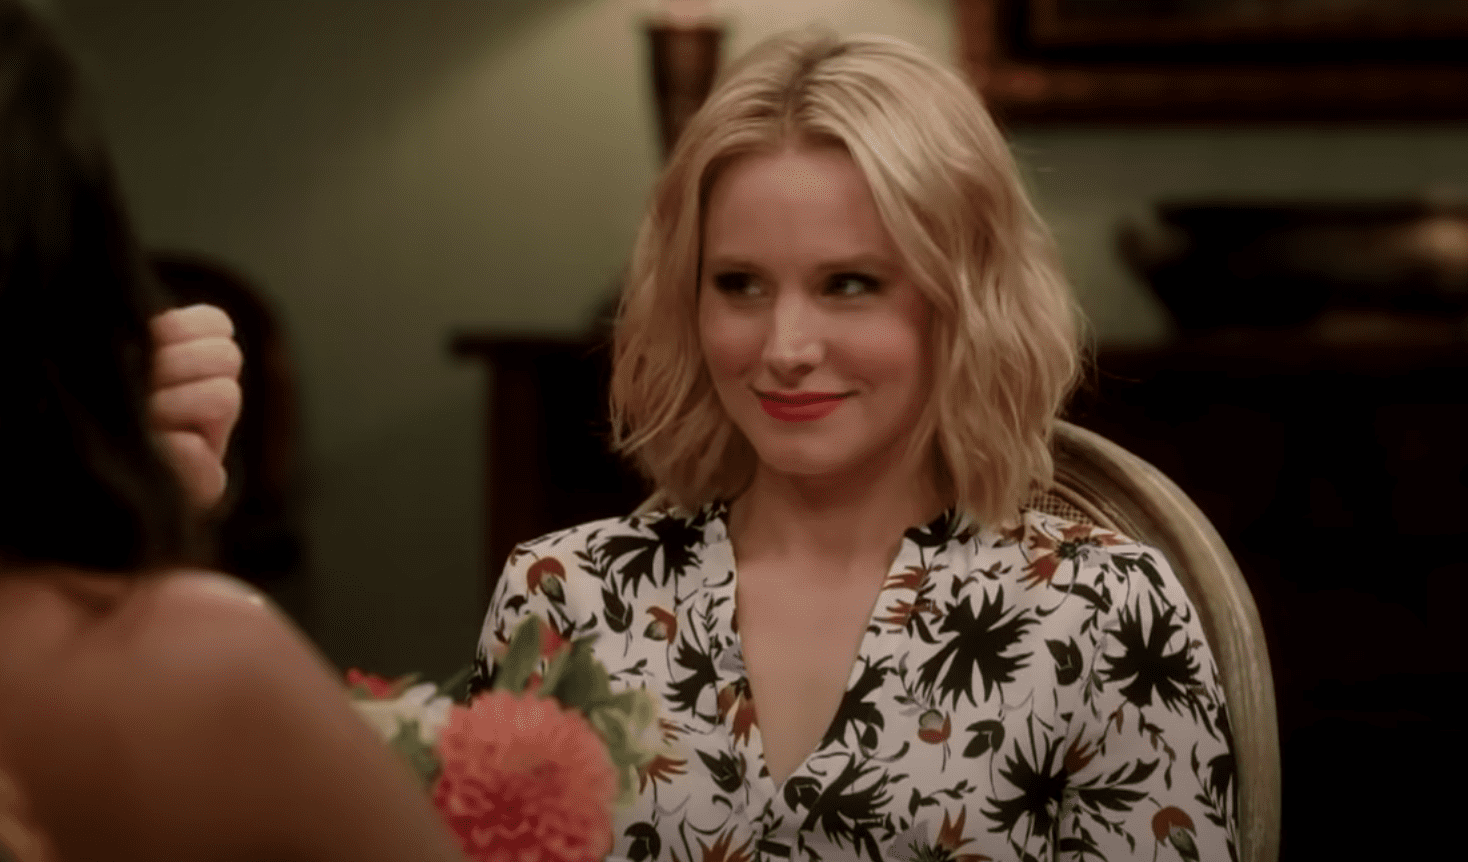 Image Source: Youtube/The Good Place|The Good Place/NBC